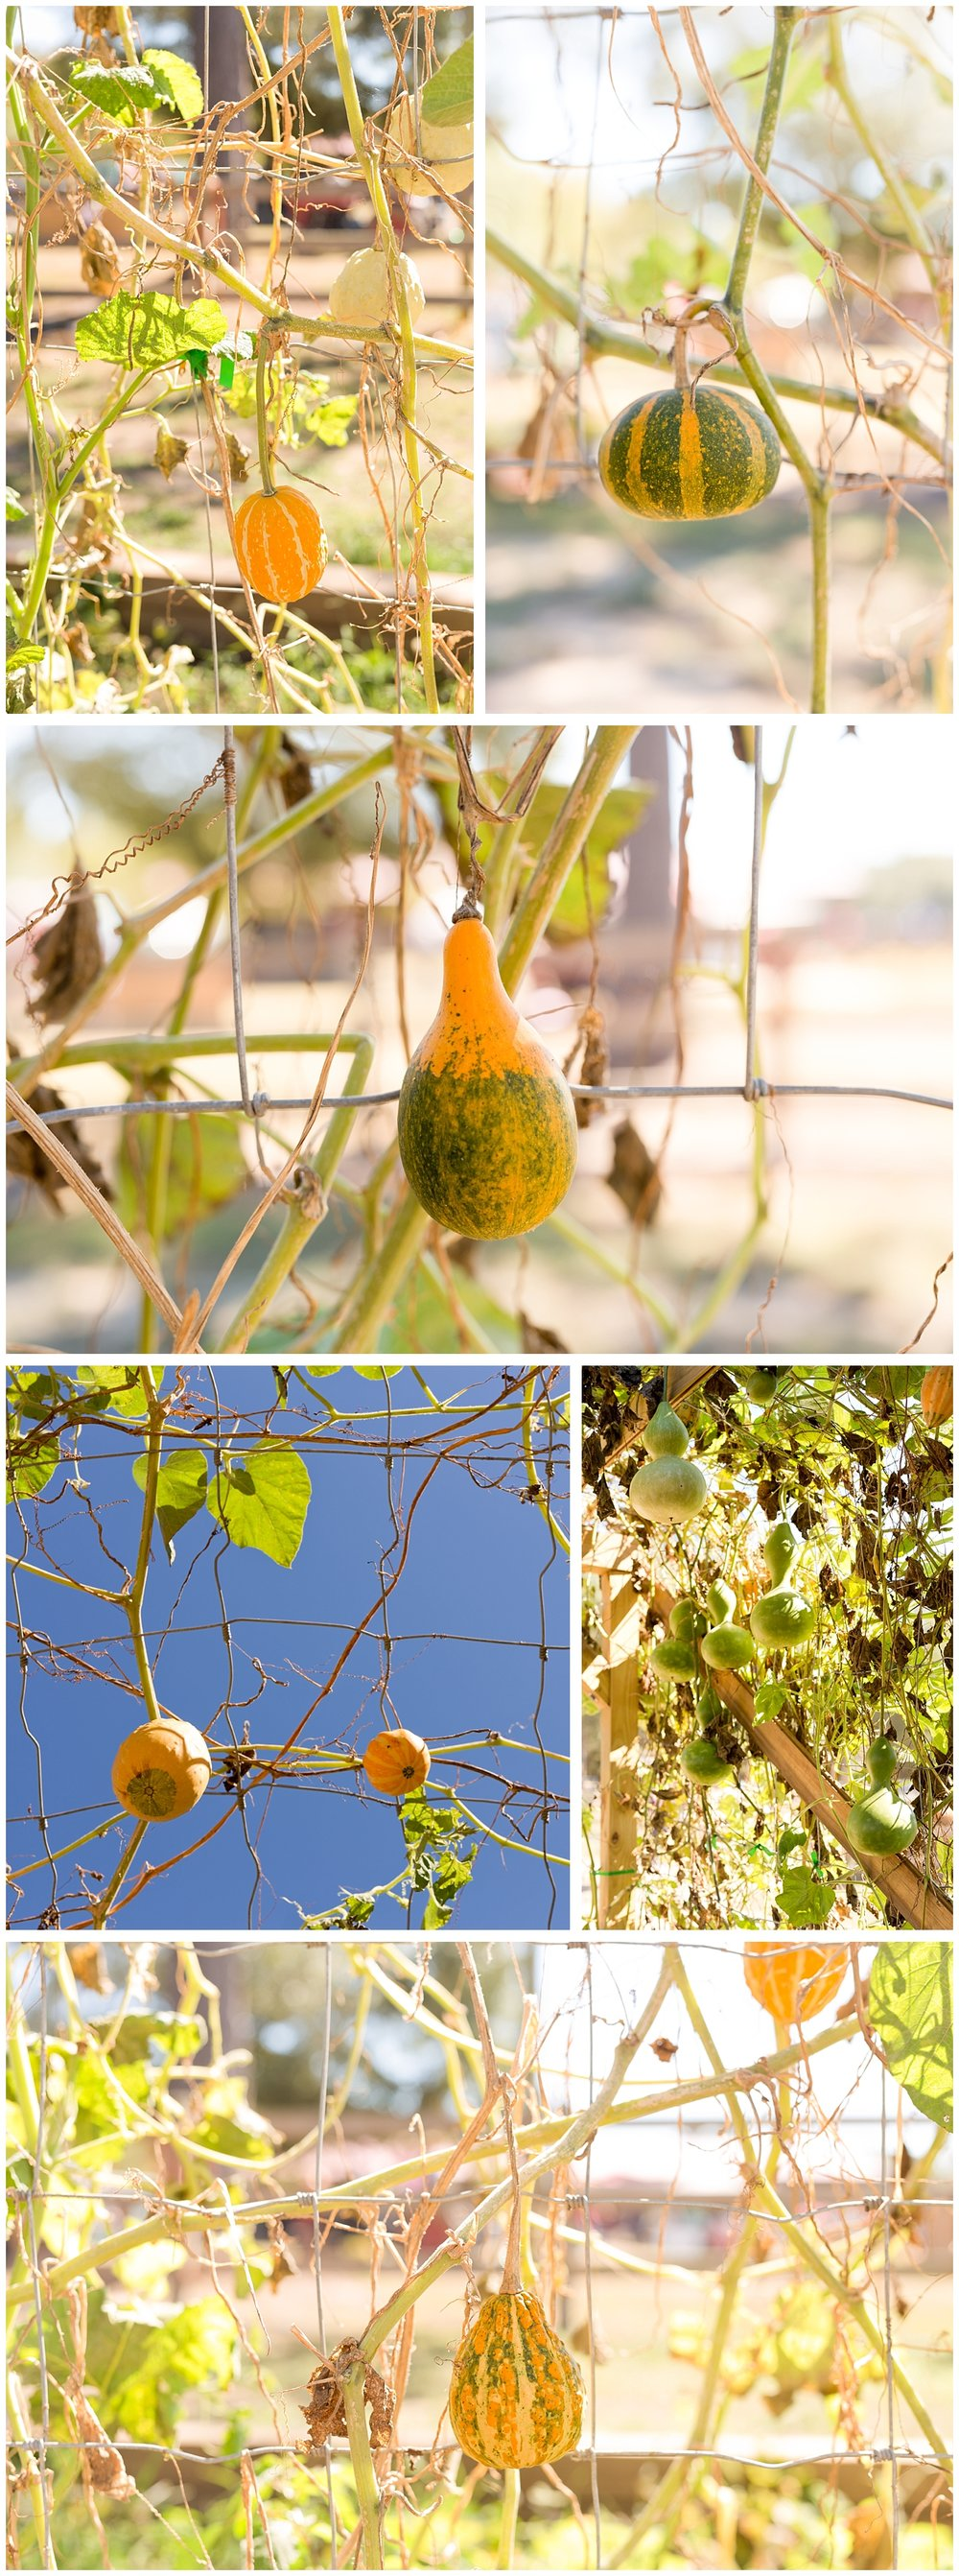 gourds on vine at pumpkin patch